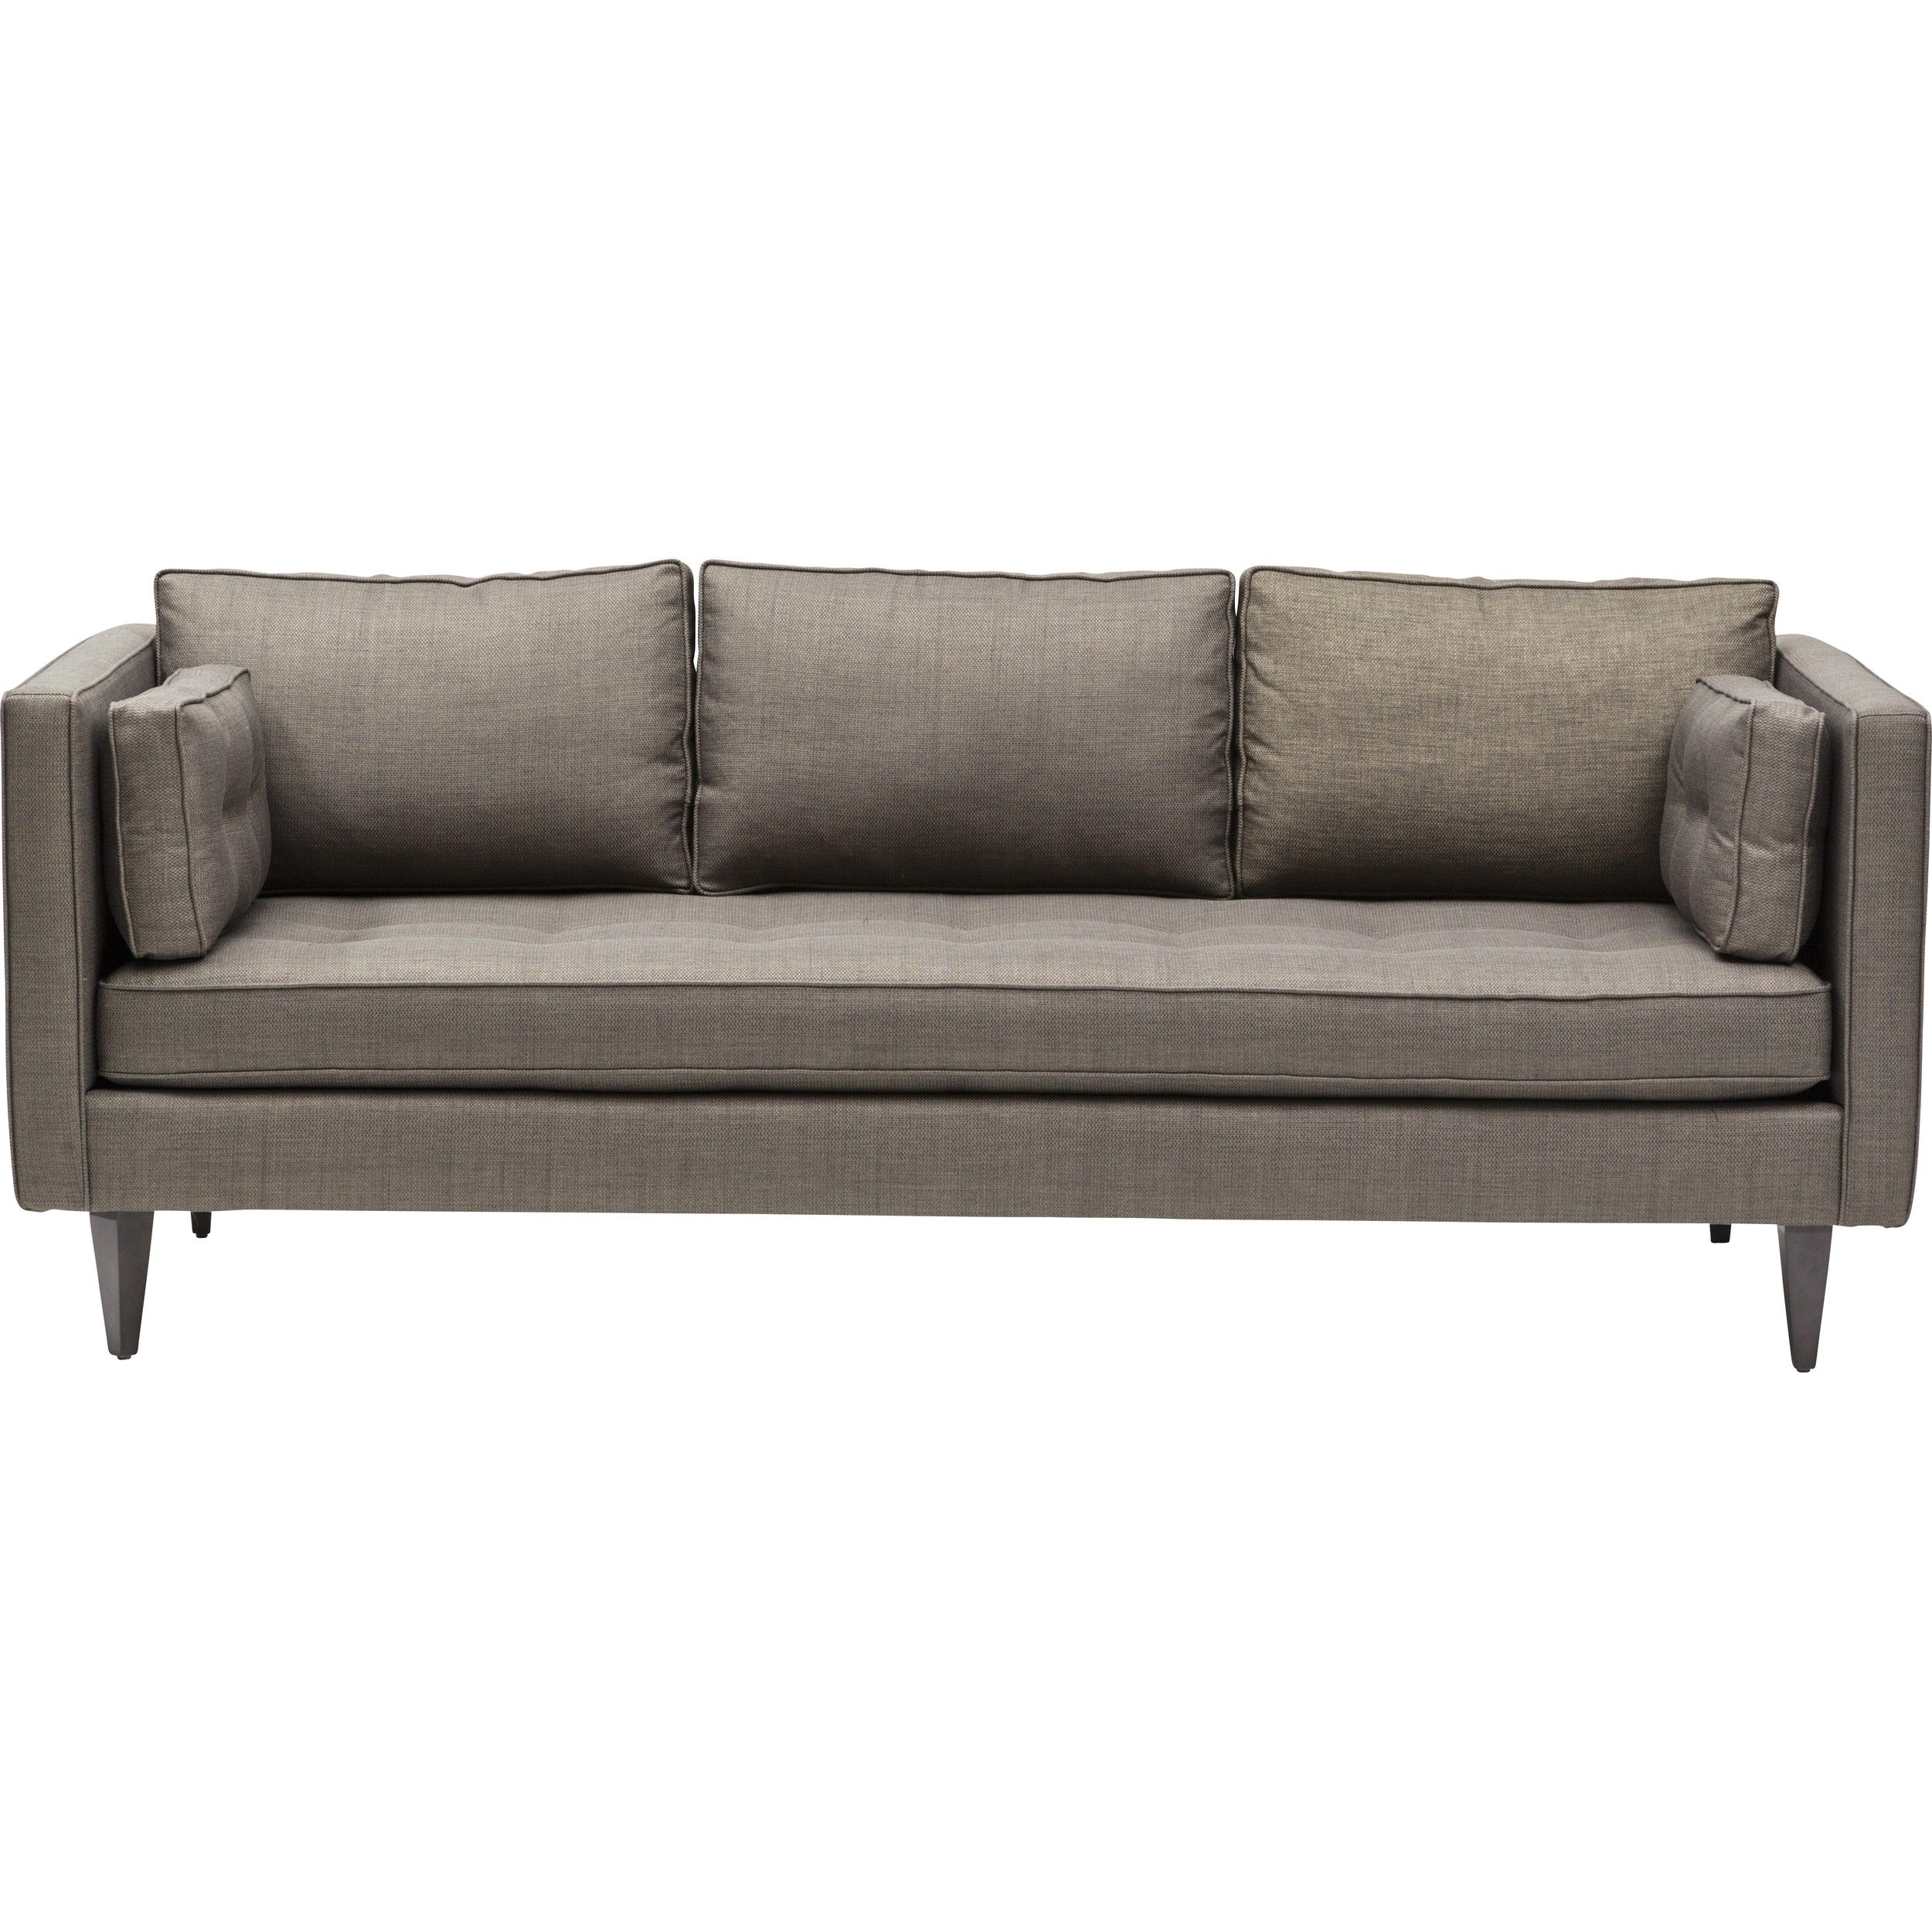 Lilla sofa furniture sofas fabric whats new made in the usa furniture mid century modern furniture